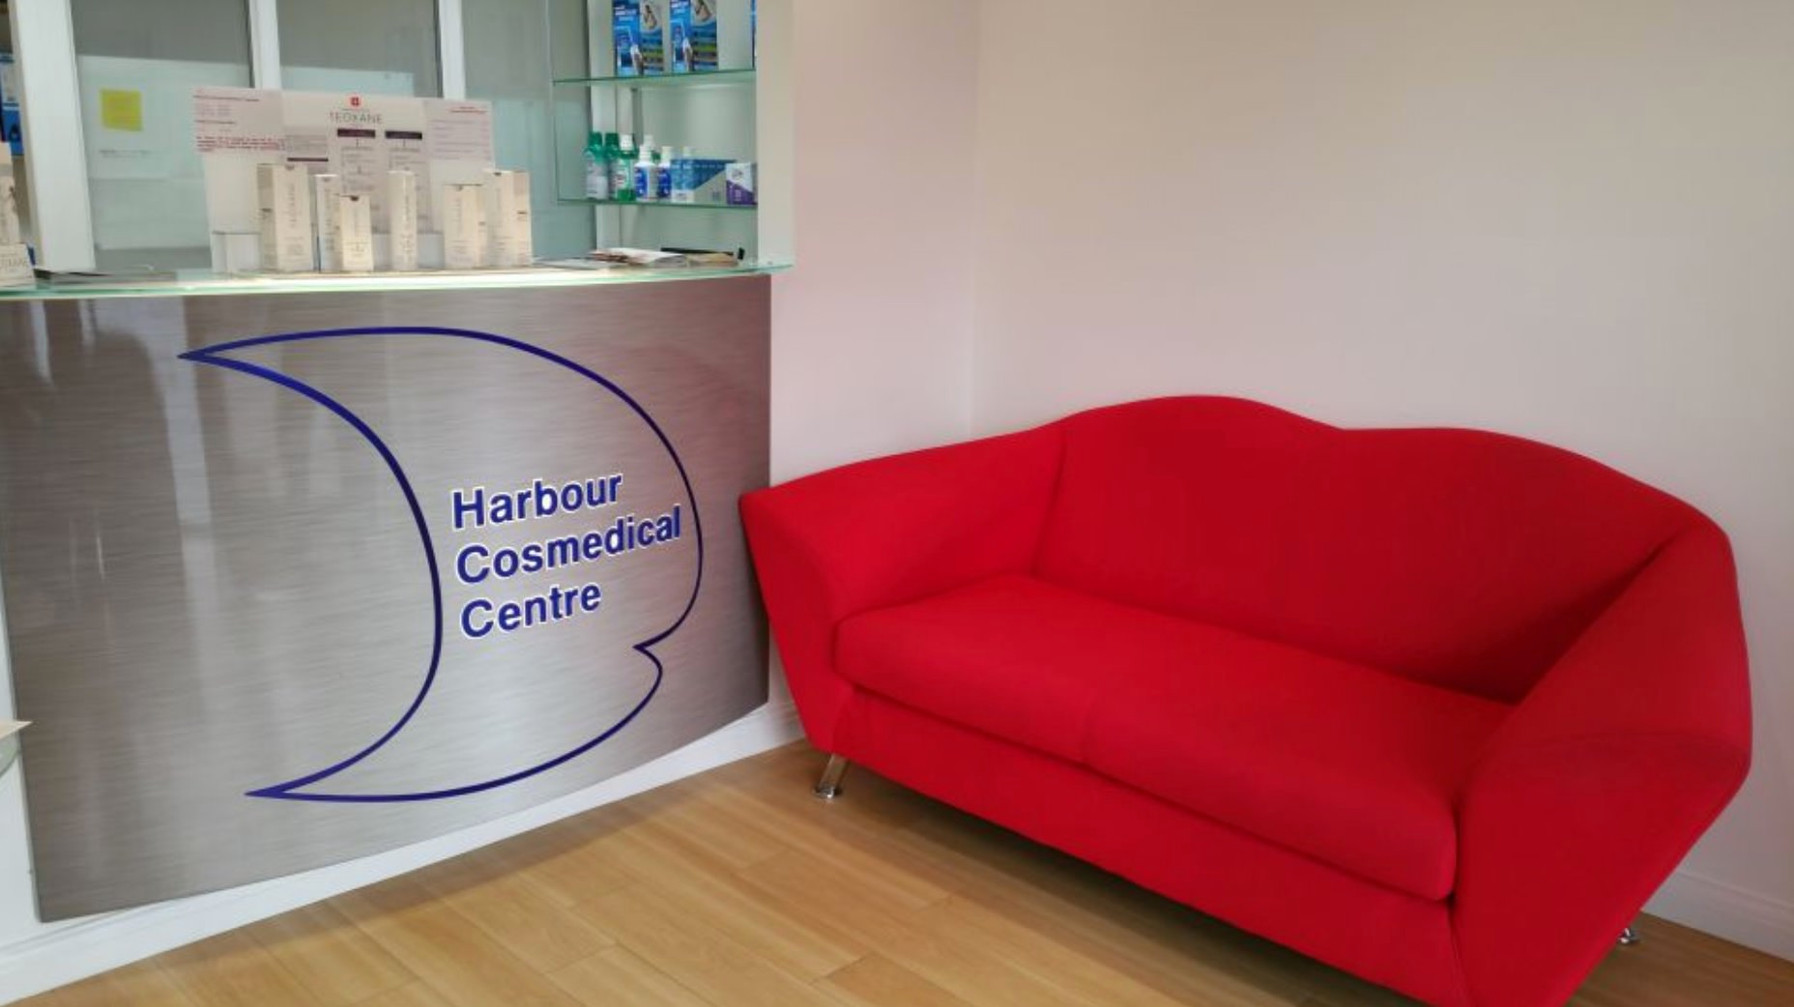 Waiting room for orthodontic and cosmedical treatment